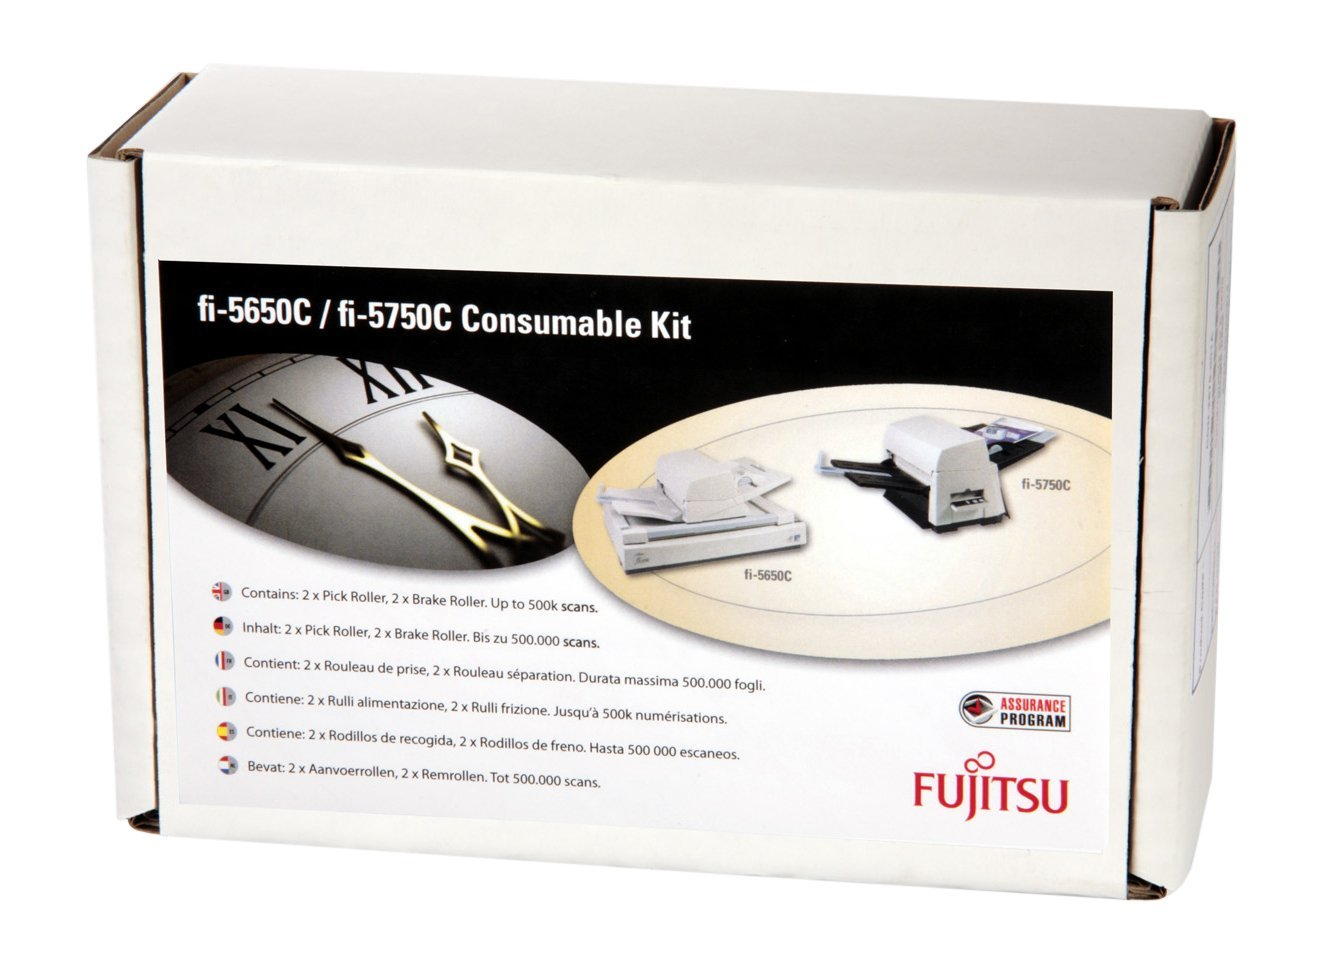 Sparepart: Fujitsu Consumable Kit Up to 500k Scans, PA03338-K011, PA03338-K010 (Up to 500k Scans)